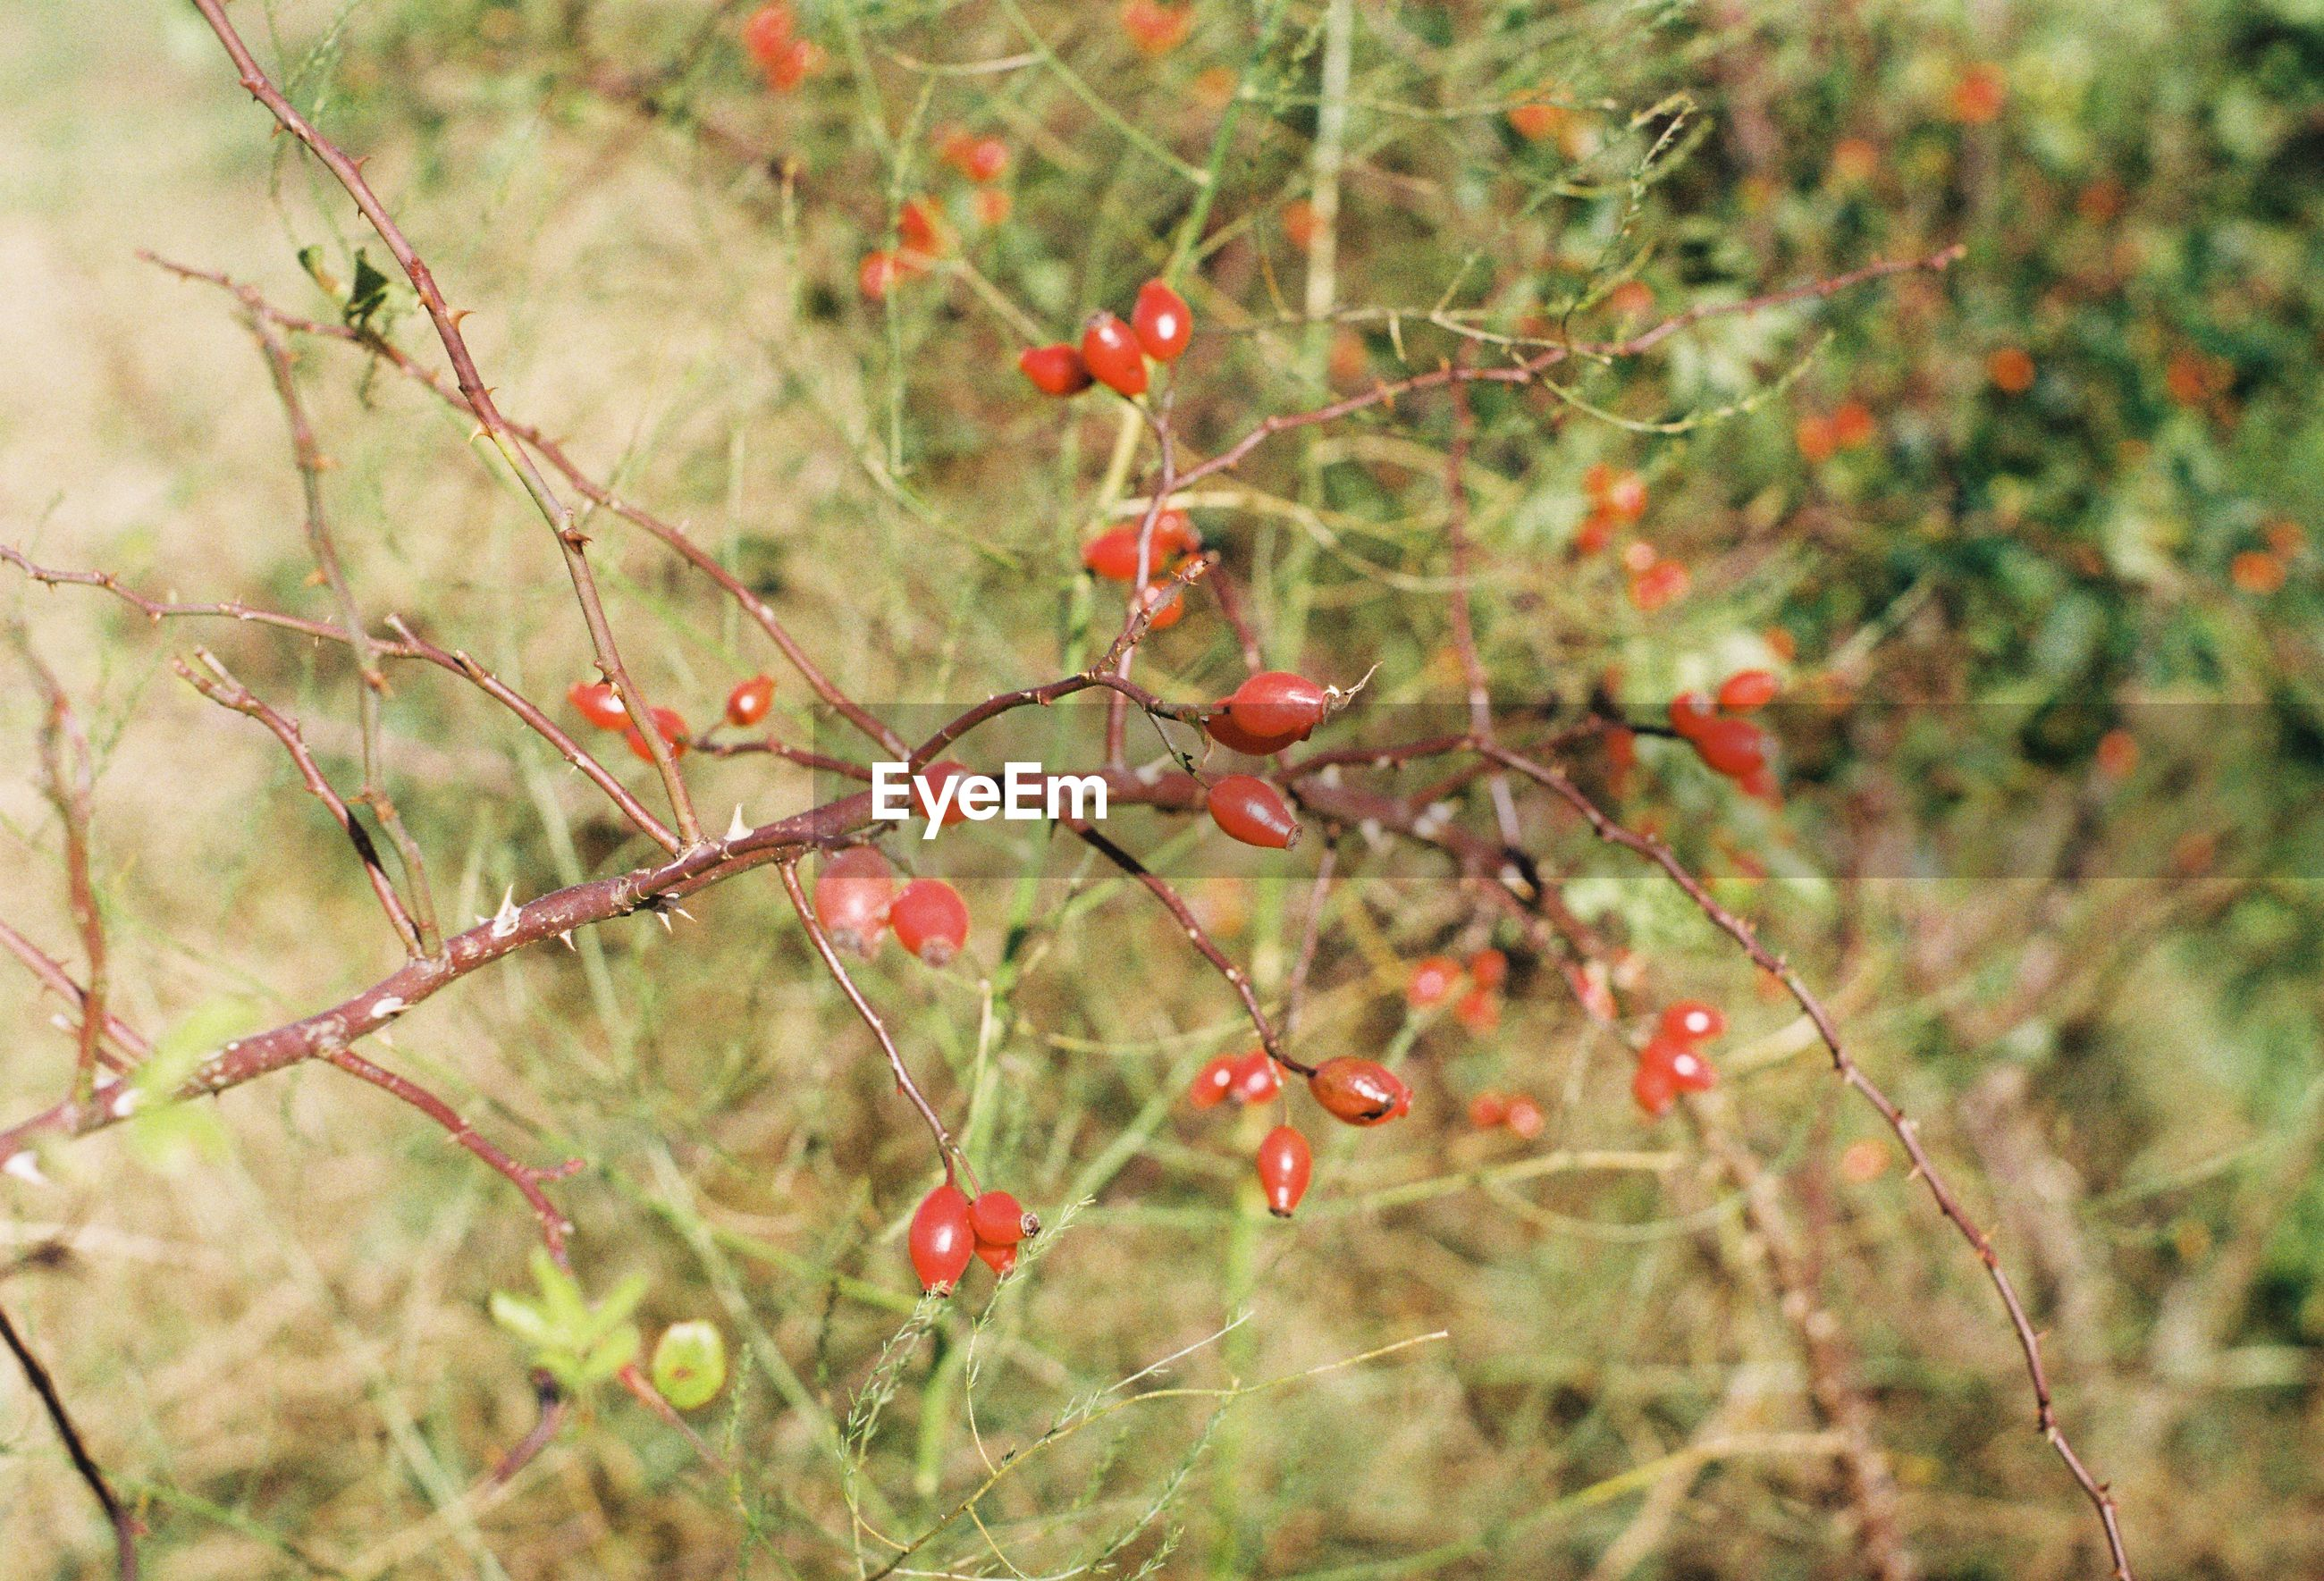 Rose hips growing on branches